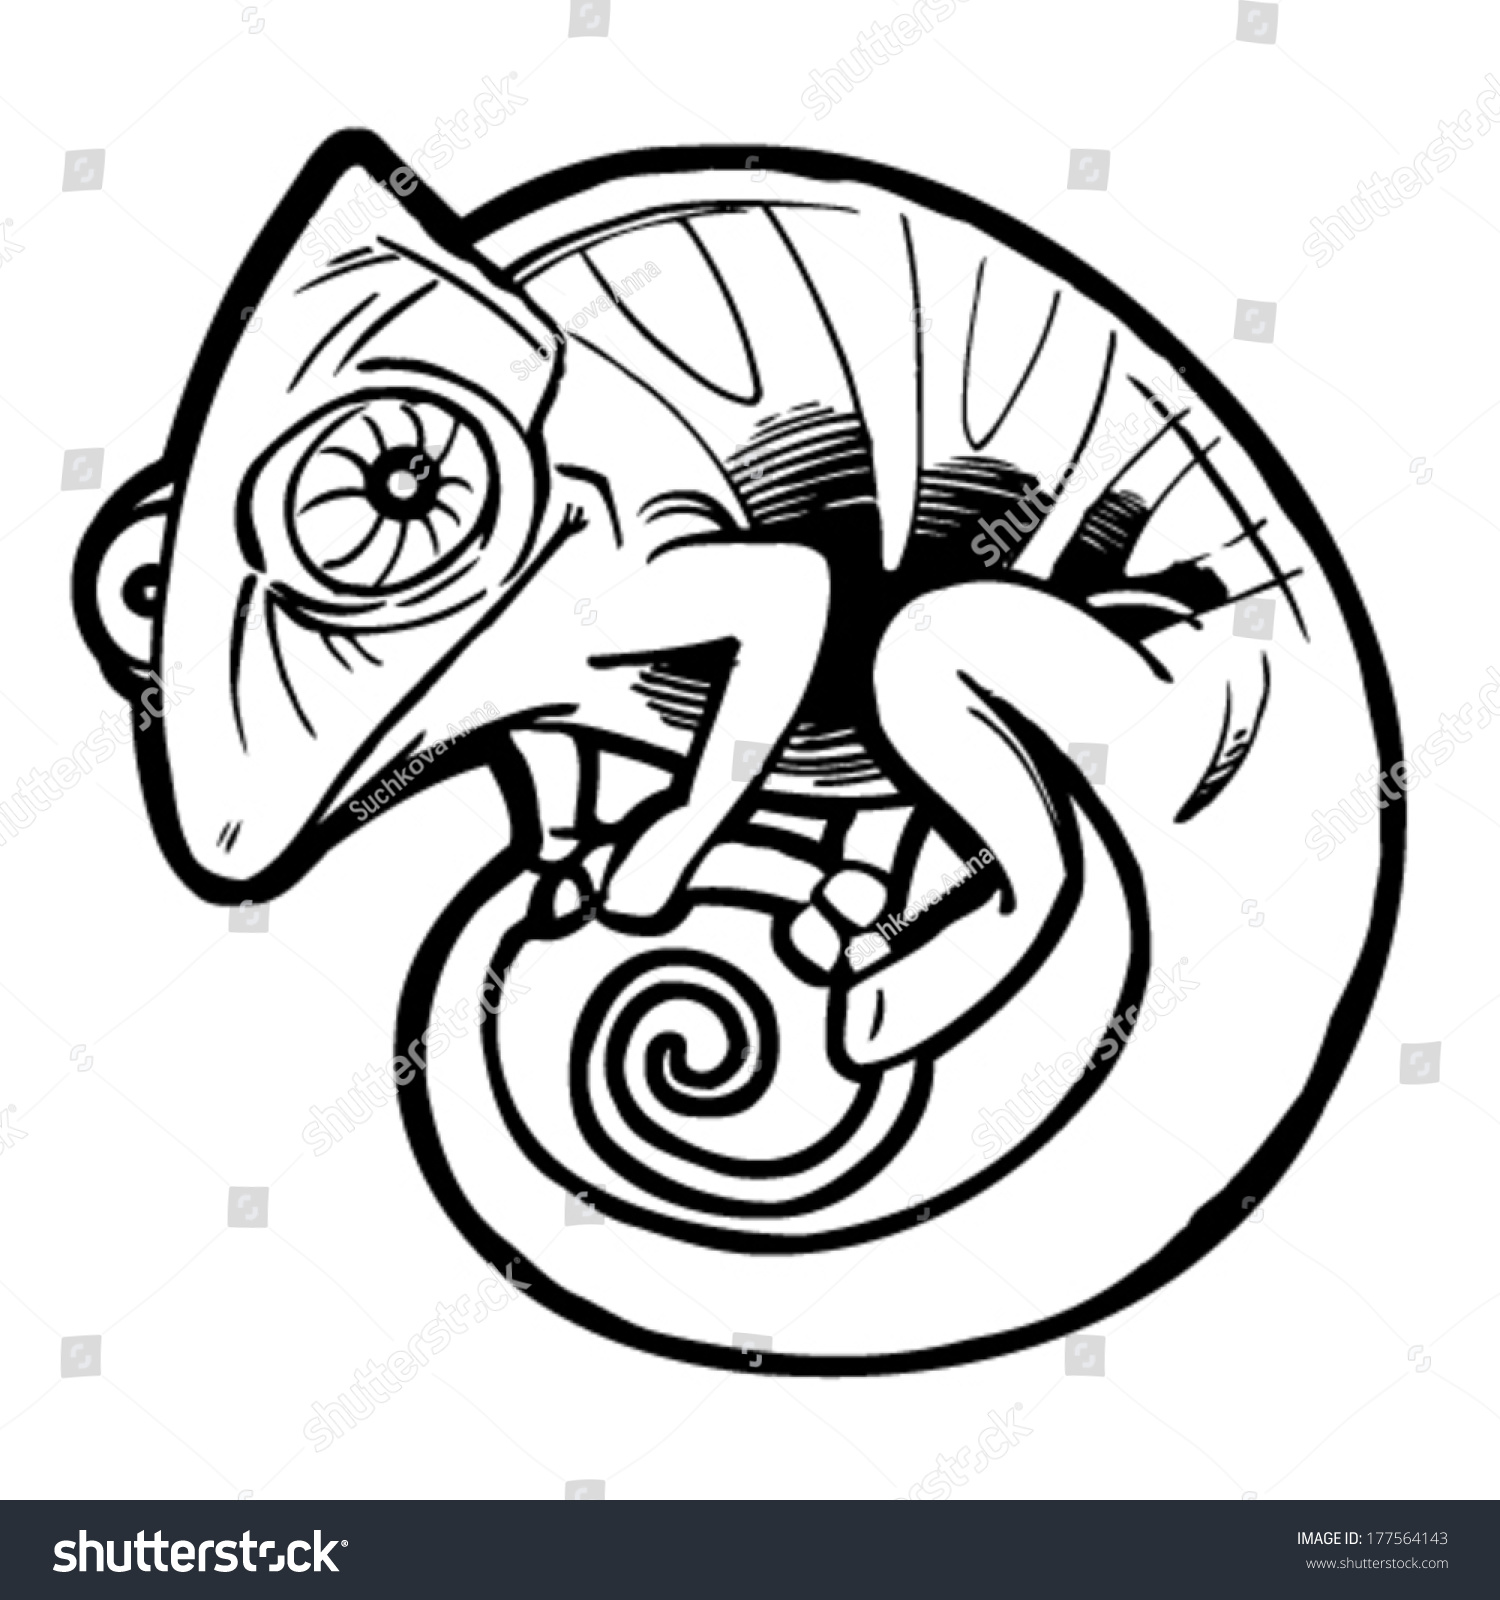 Chameleon Arts Tattoo Flash: Chameleon Tattoo Black Stylized Cartoon Cute Vector